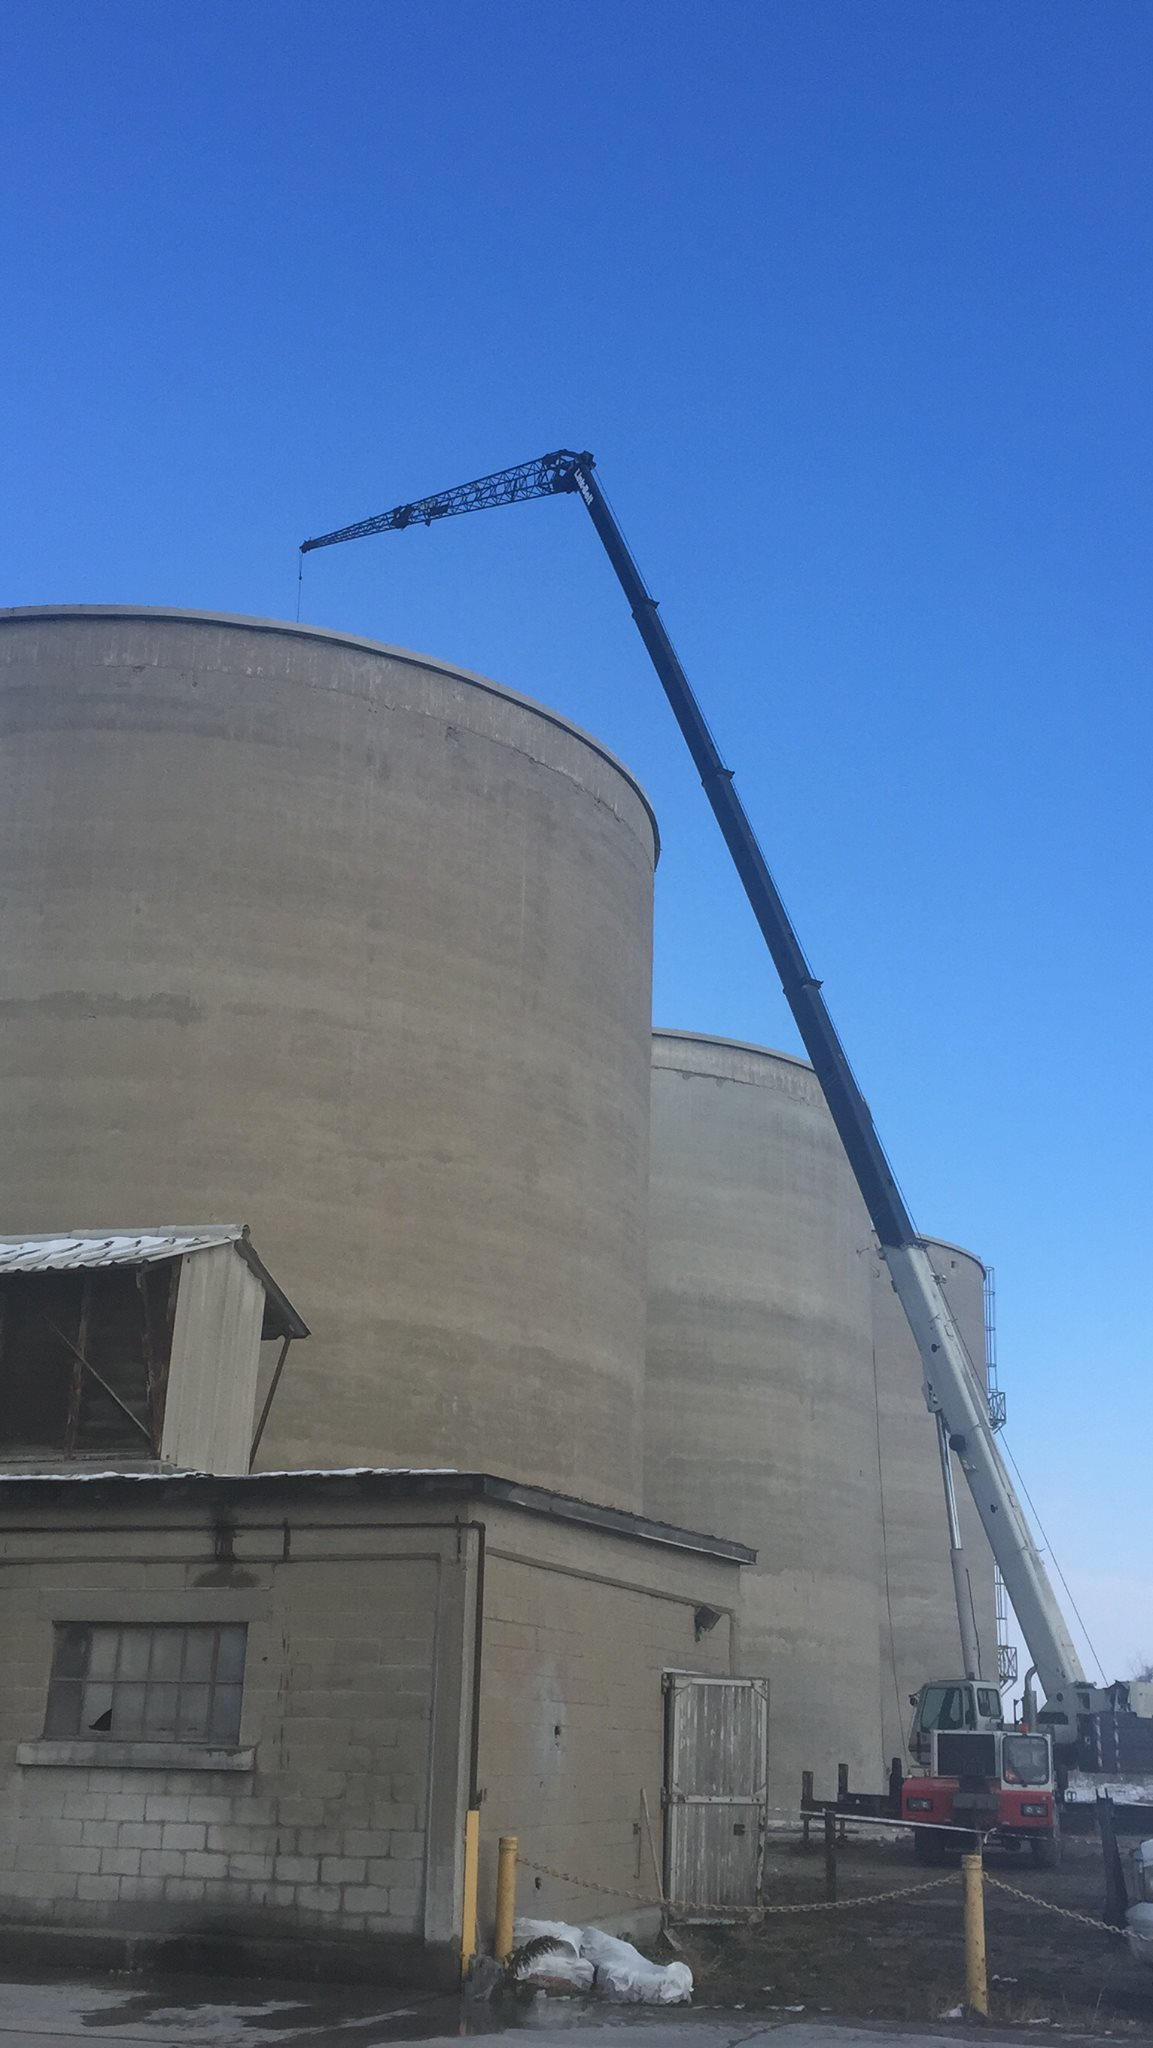 Mobile crane does millwright work